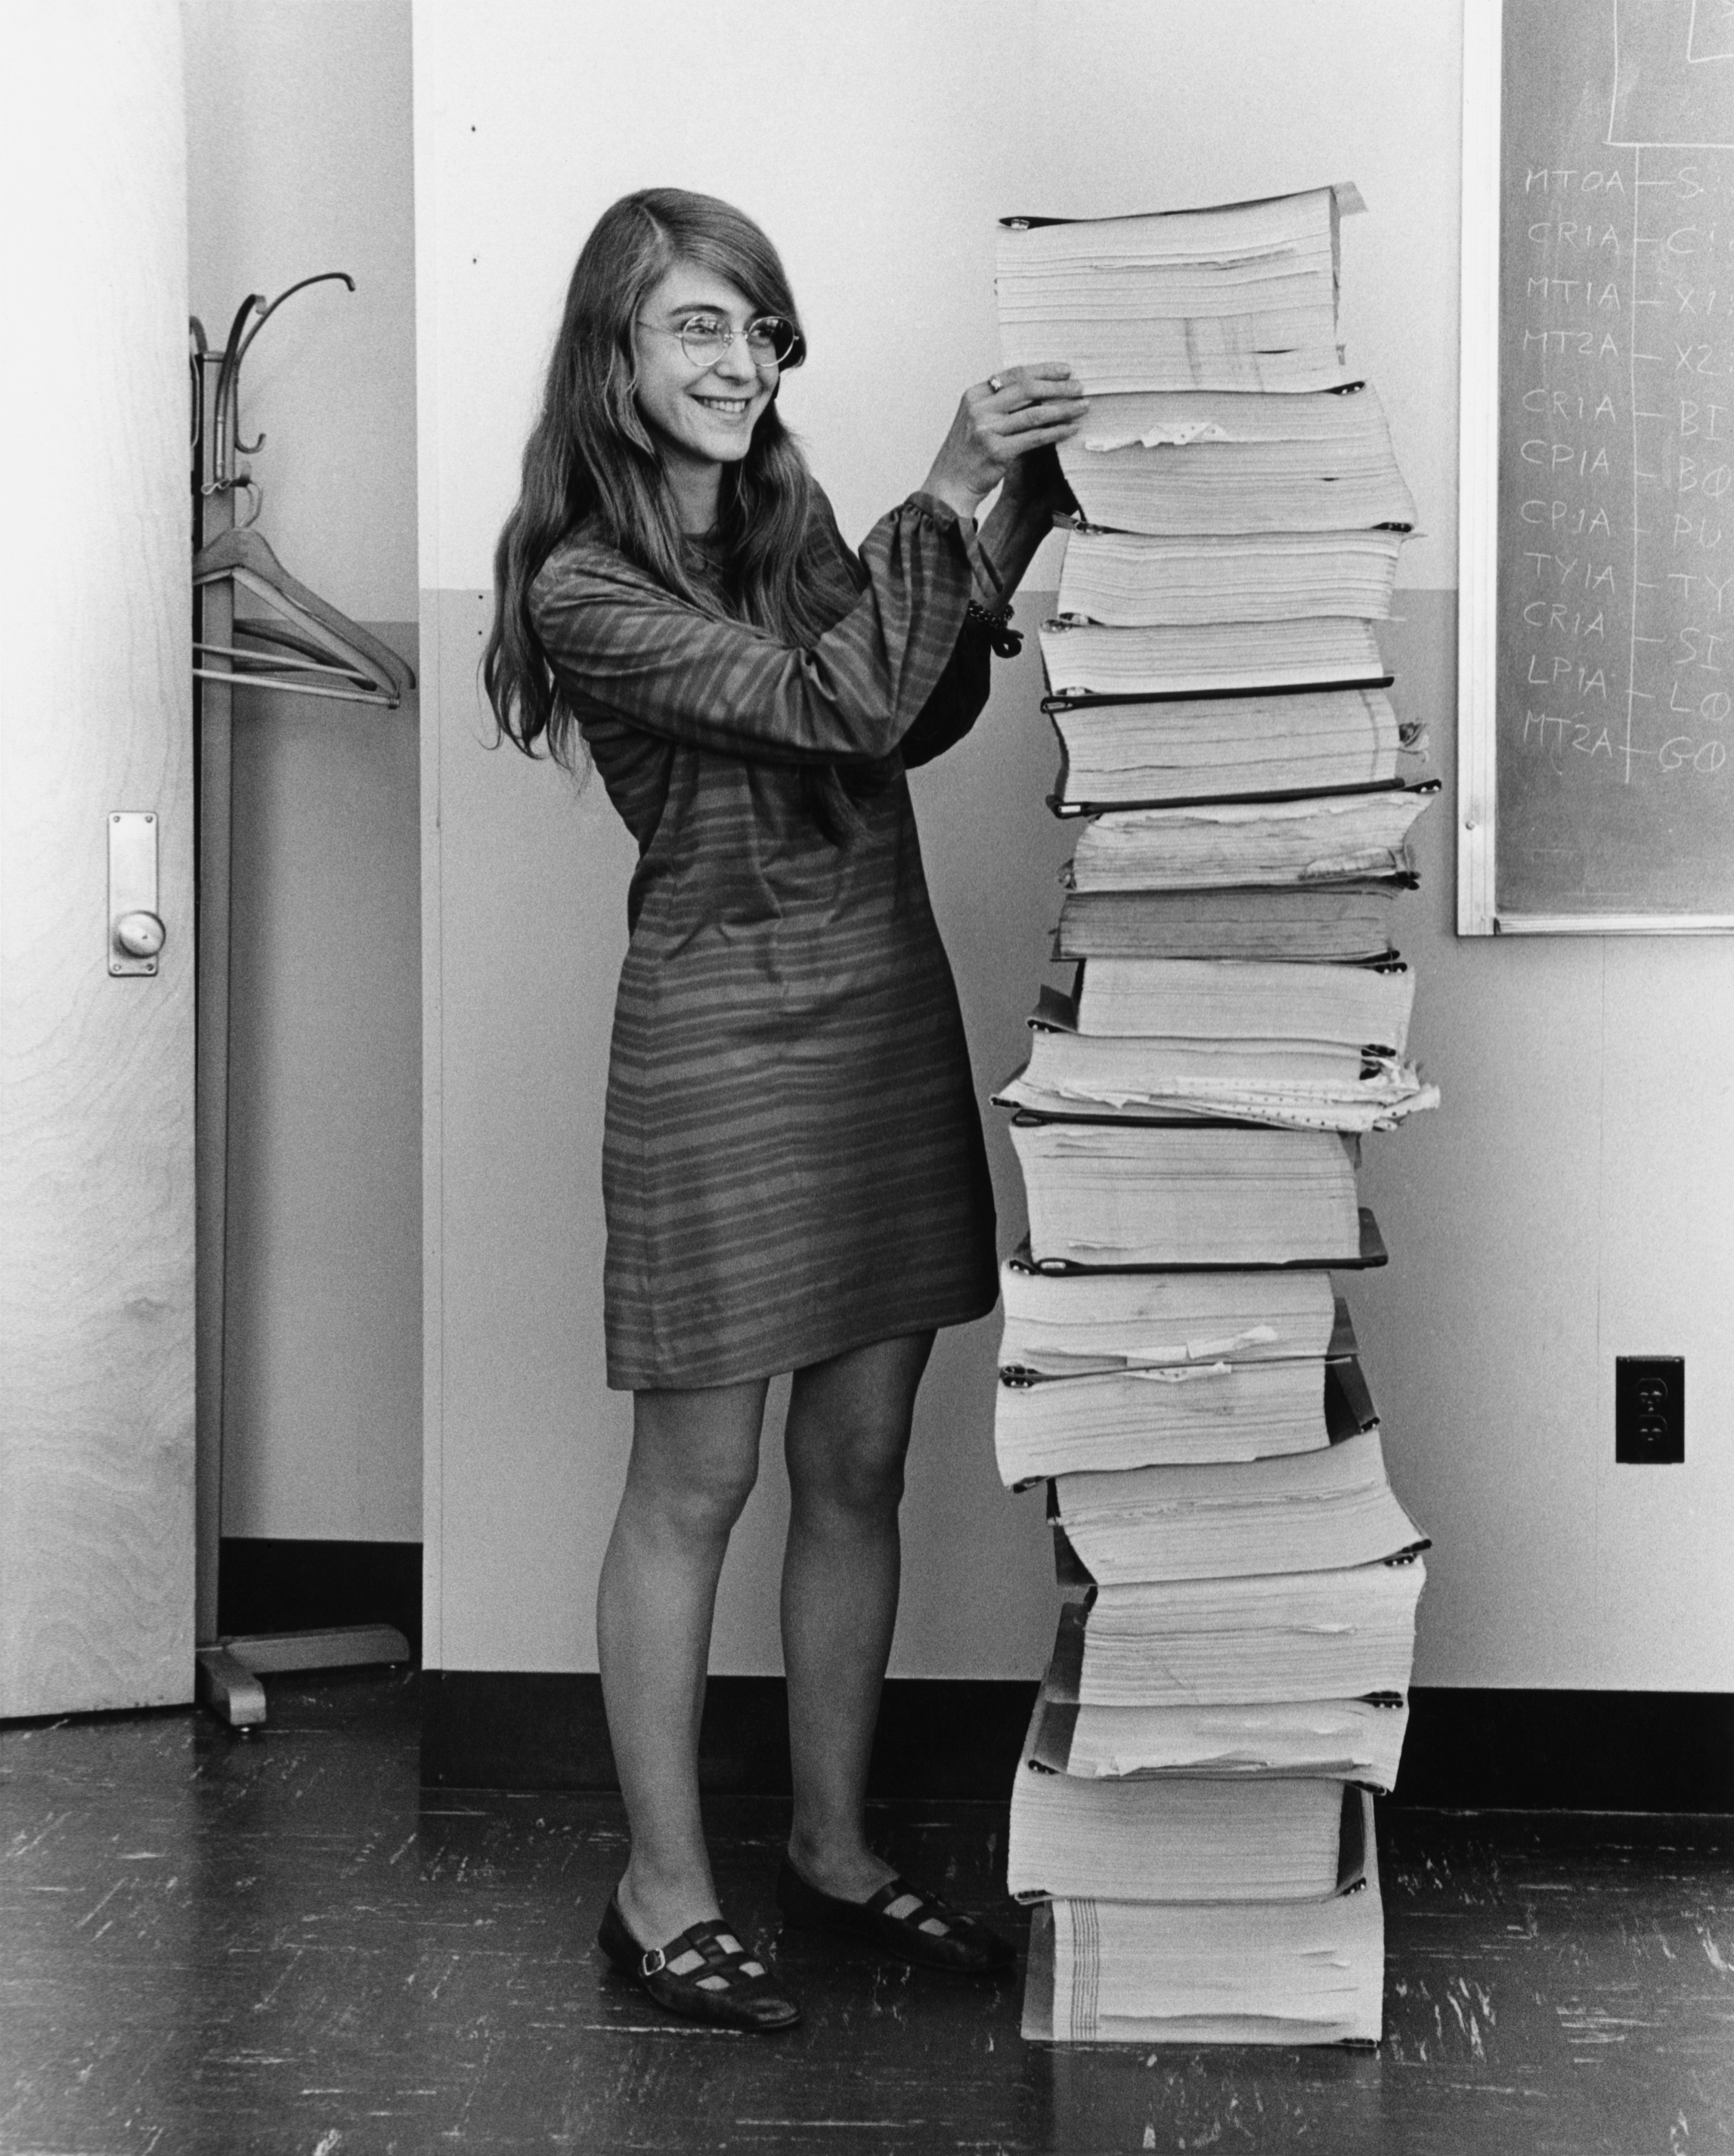 Margaret Hamilton - American computer scientist credited with co-creating the very idea of